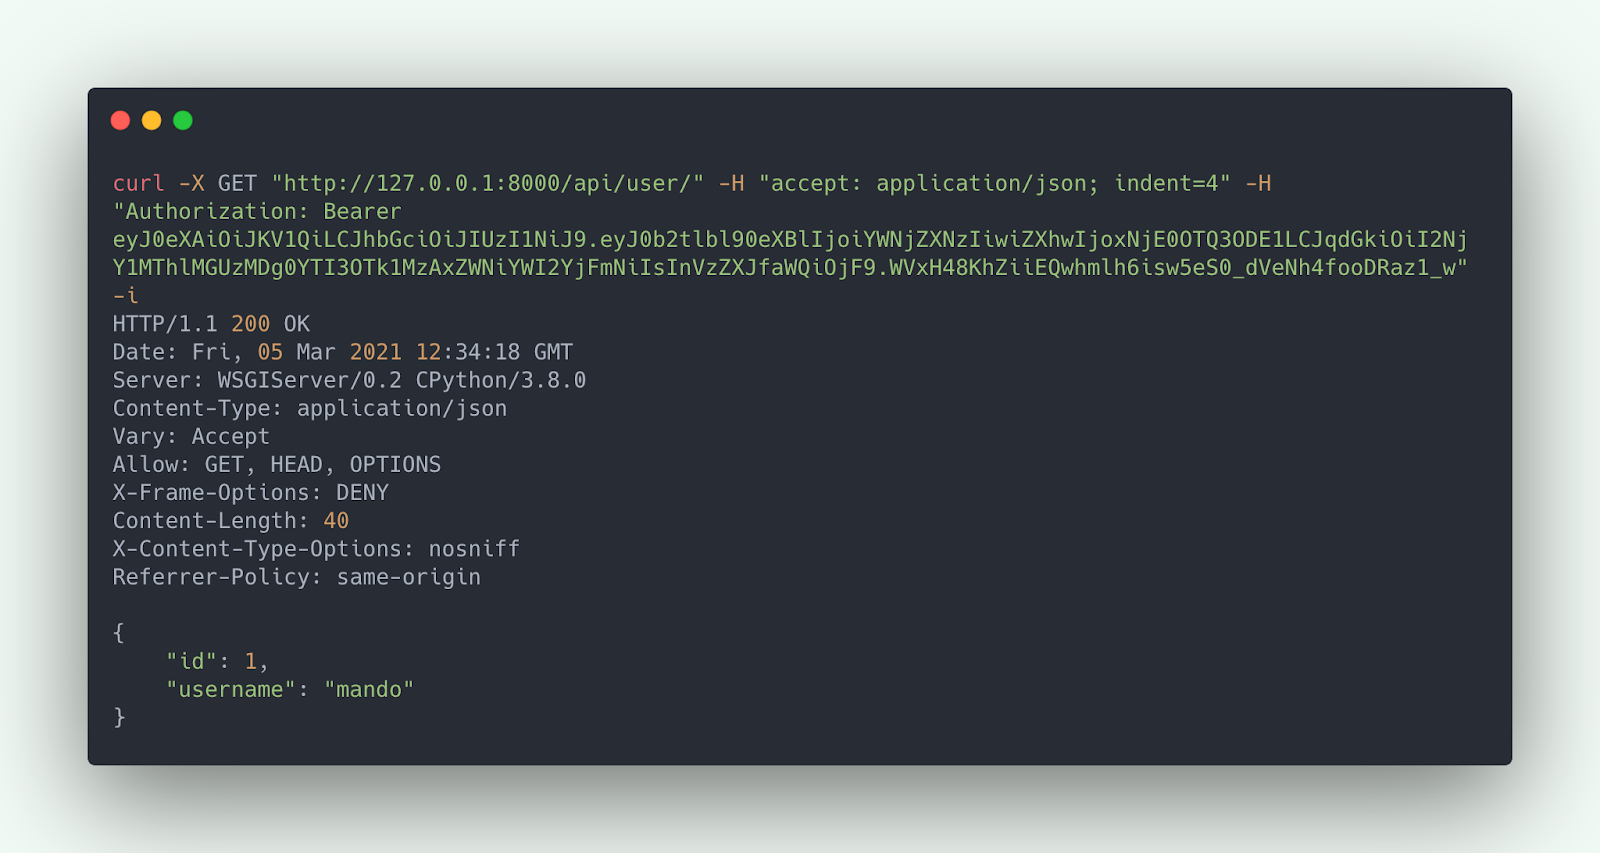 HTTP Request (curl) to User API with refreshed access token